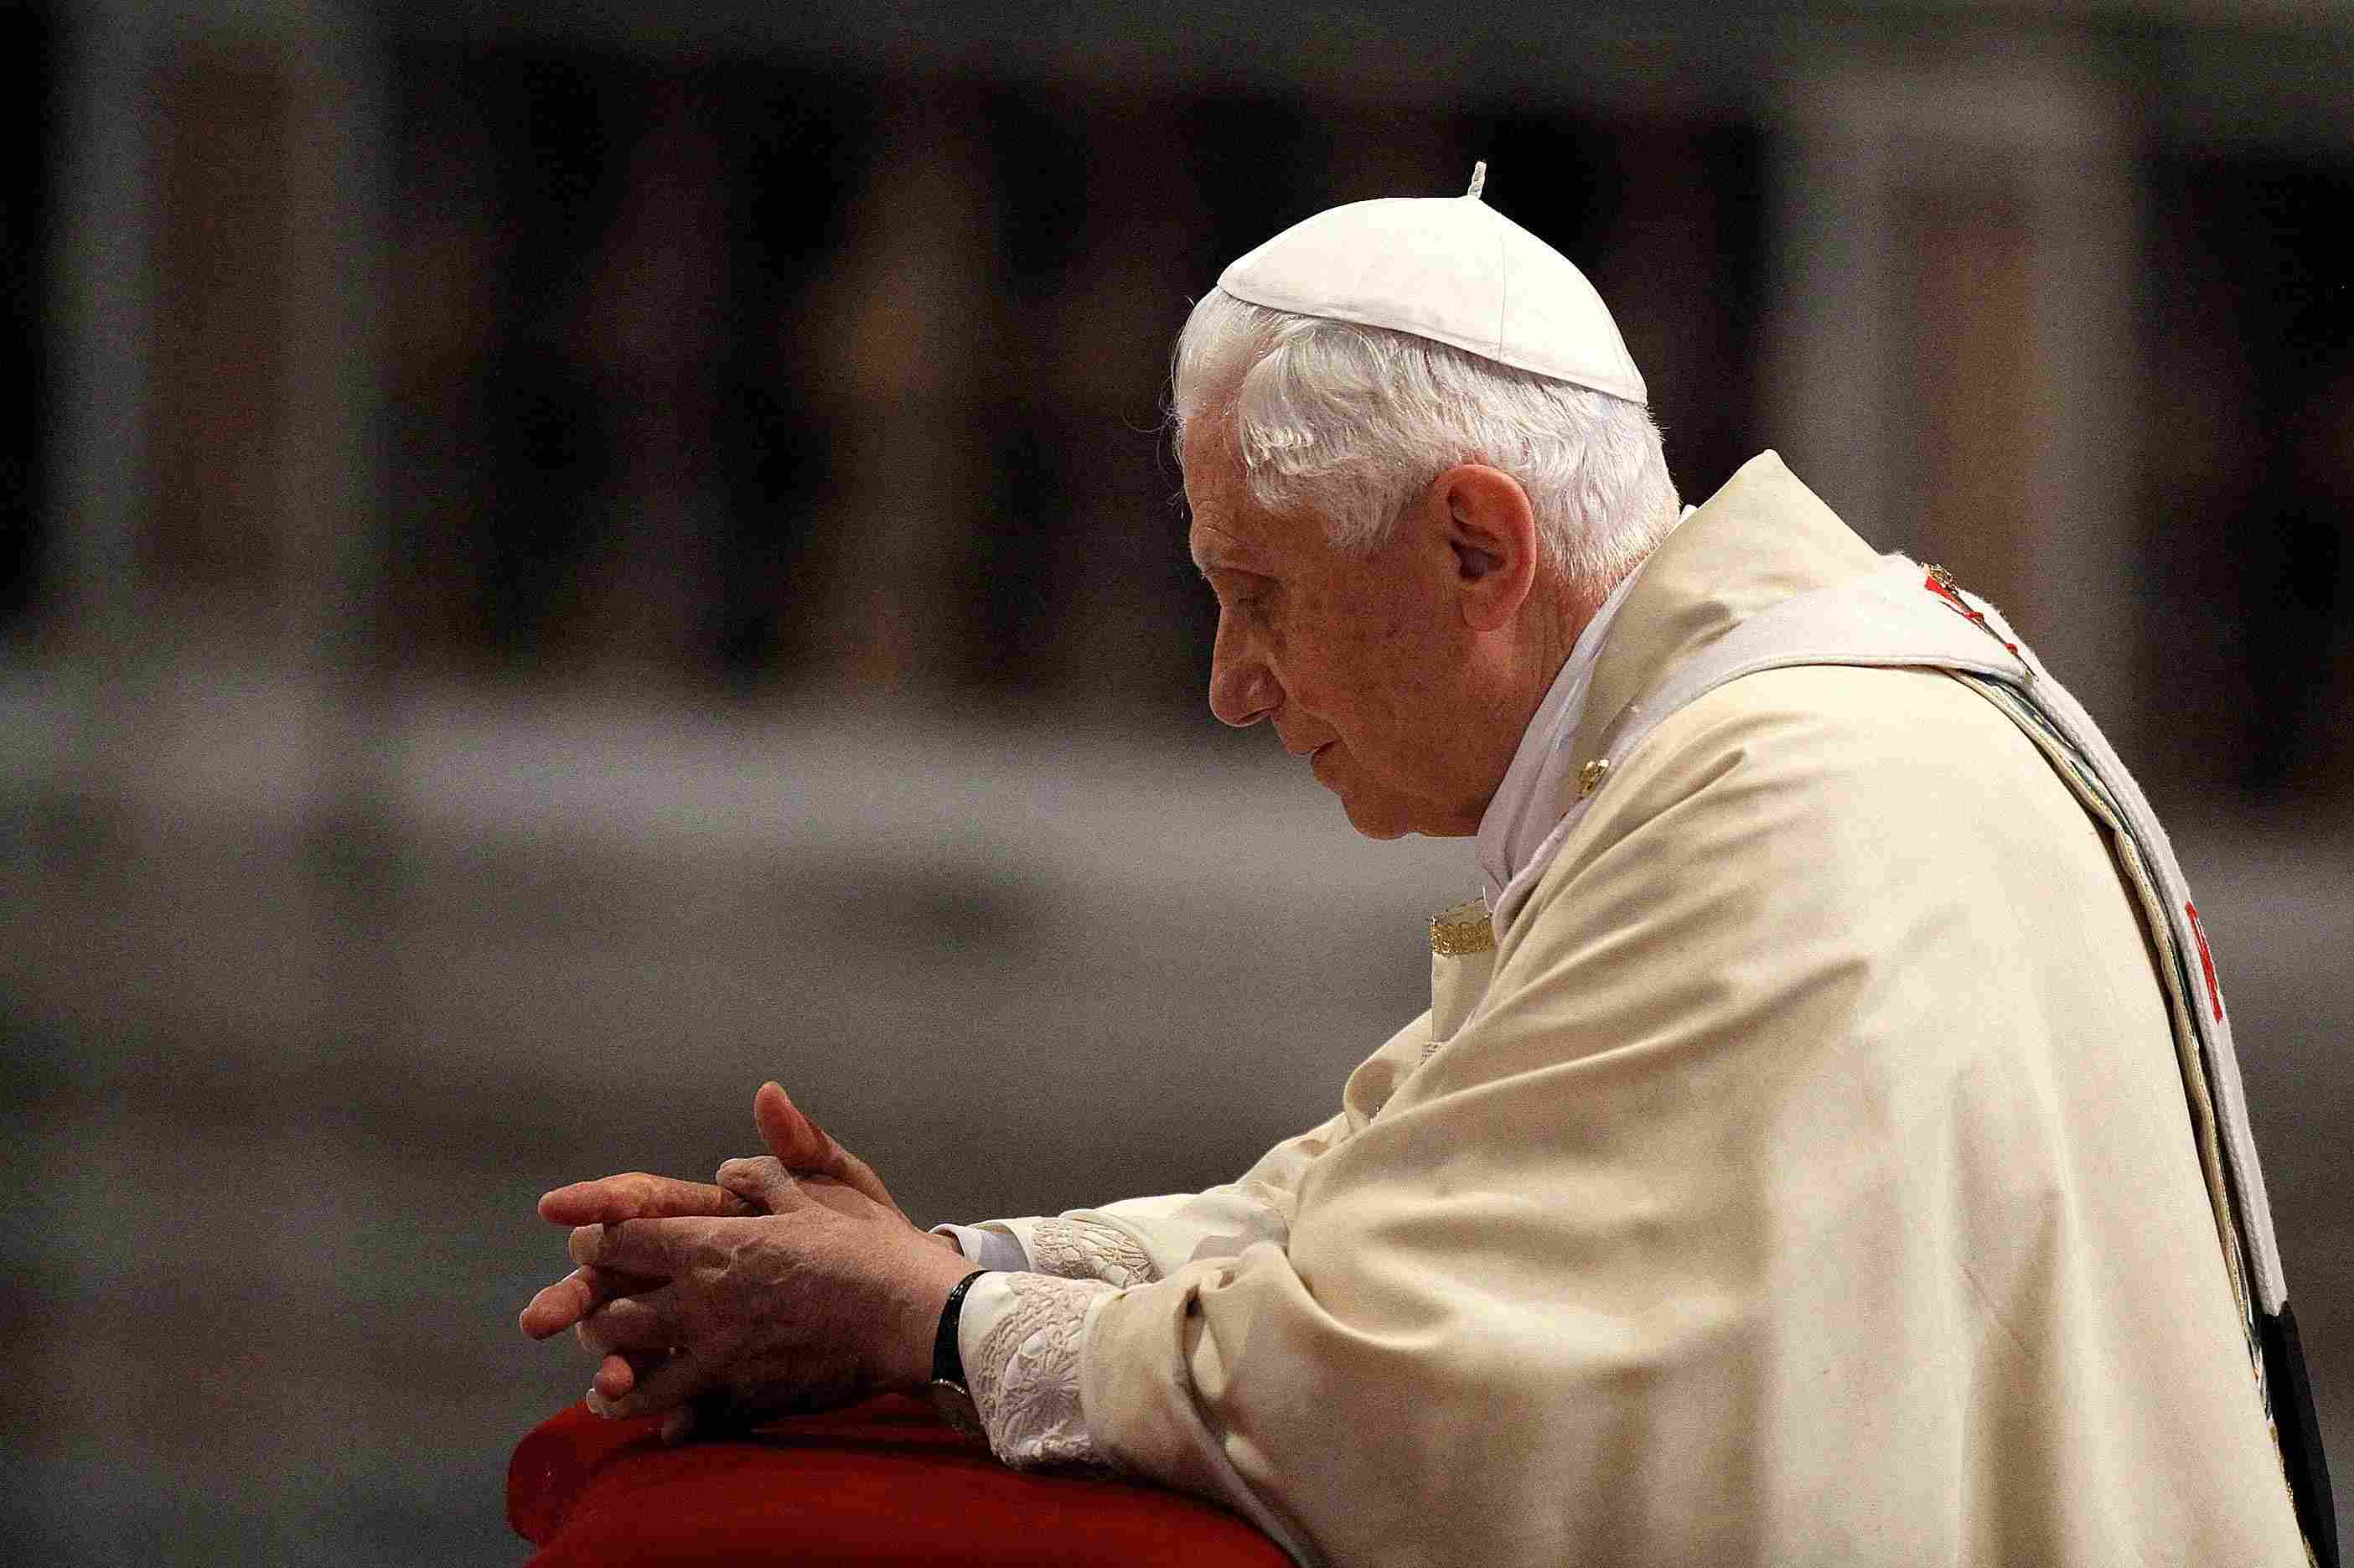 Pope Benedict prays in front of Pope John Paul II's coffin, May 1, 2011. (Vatican Pool/Getty Images)